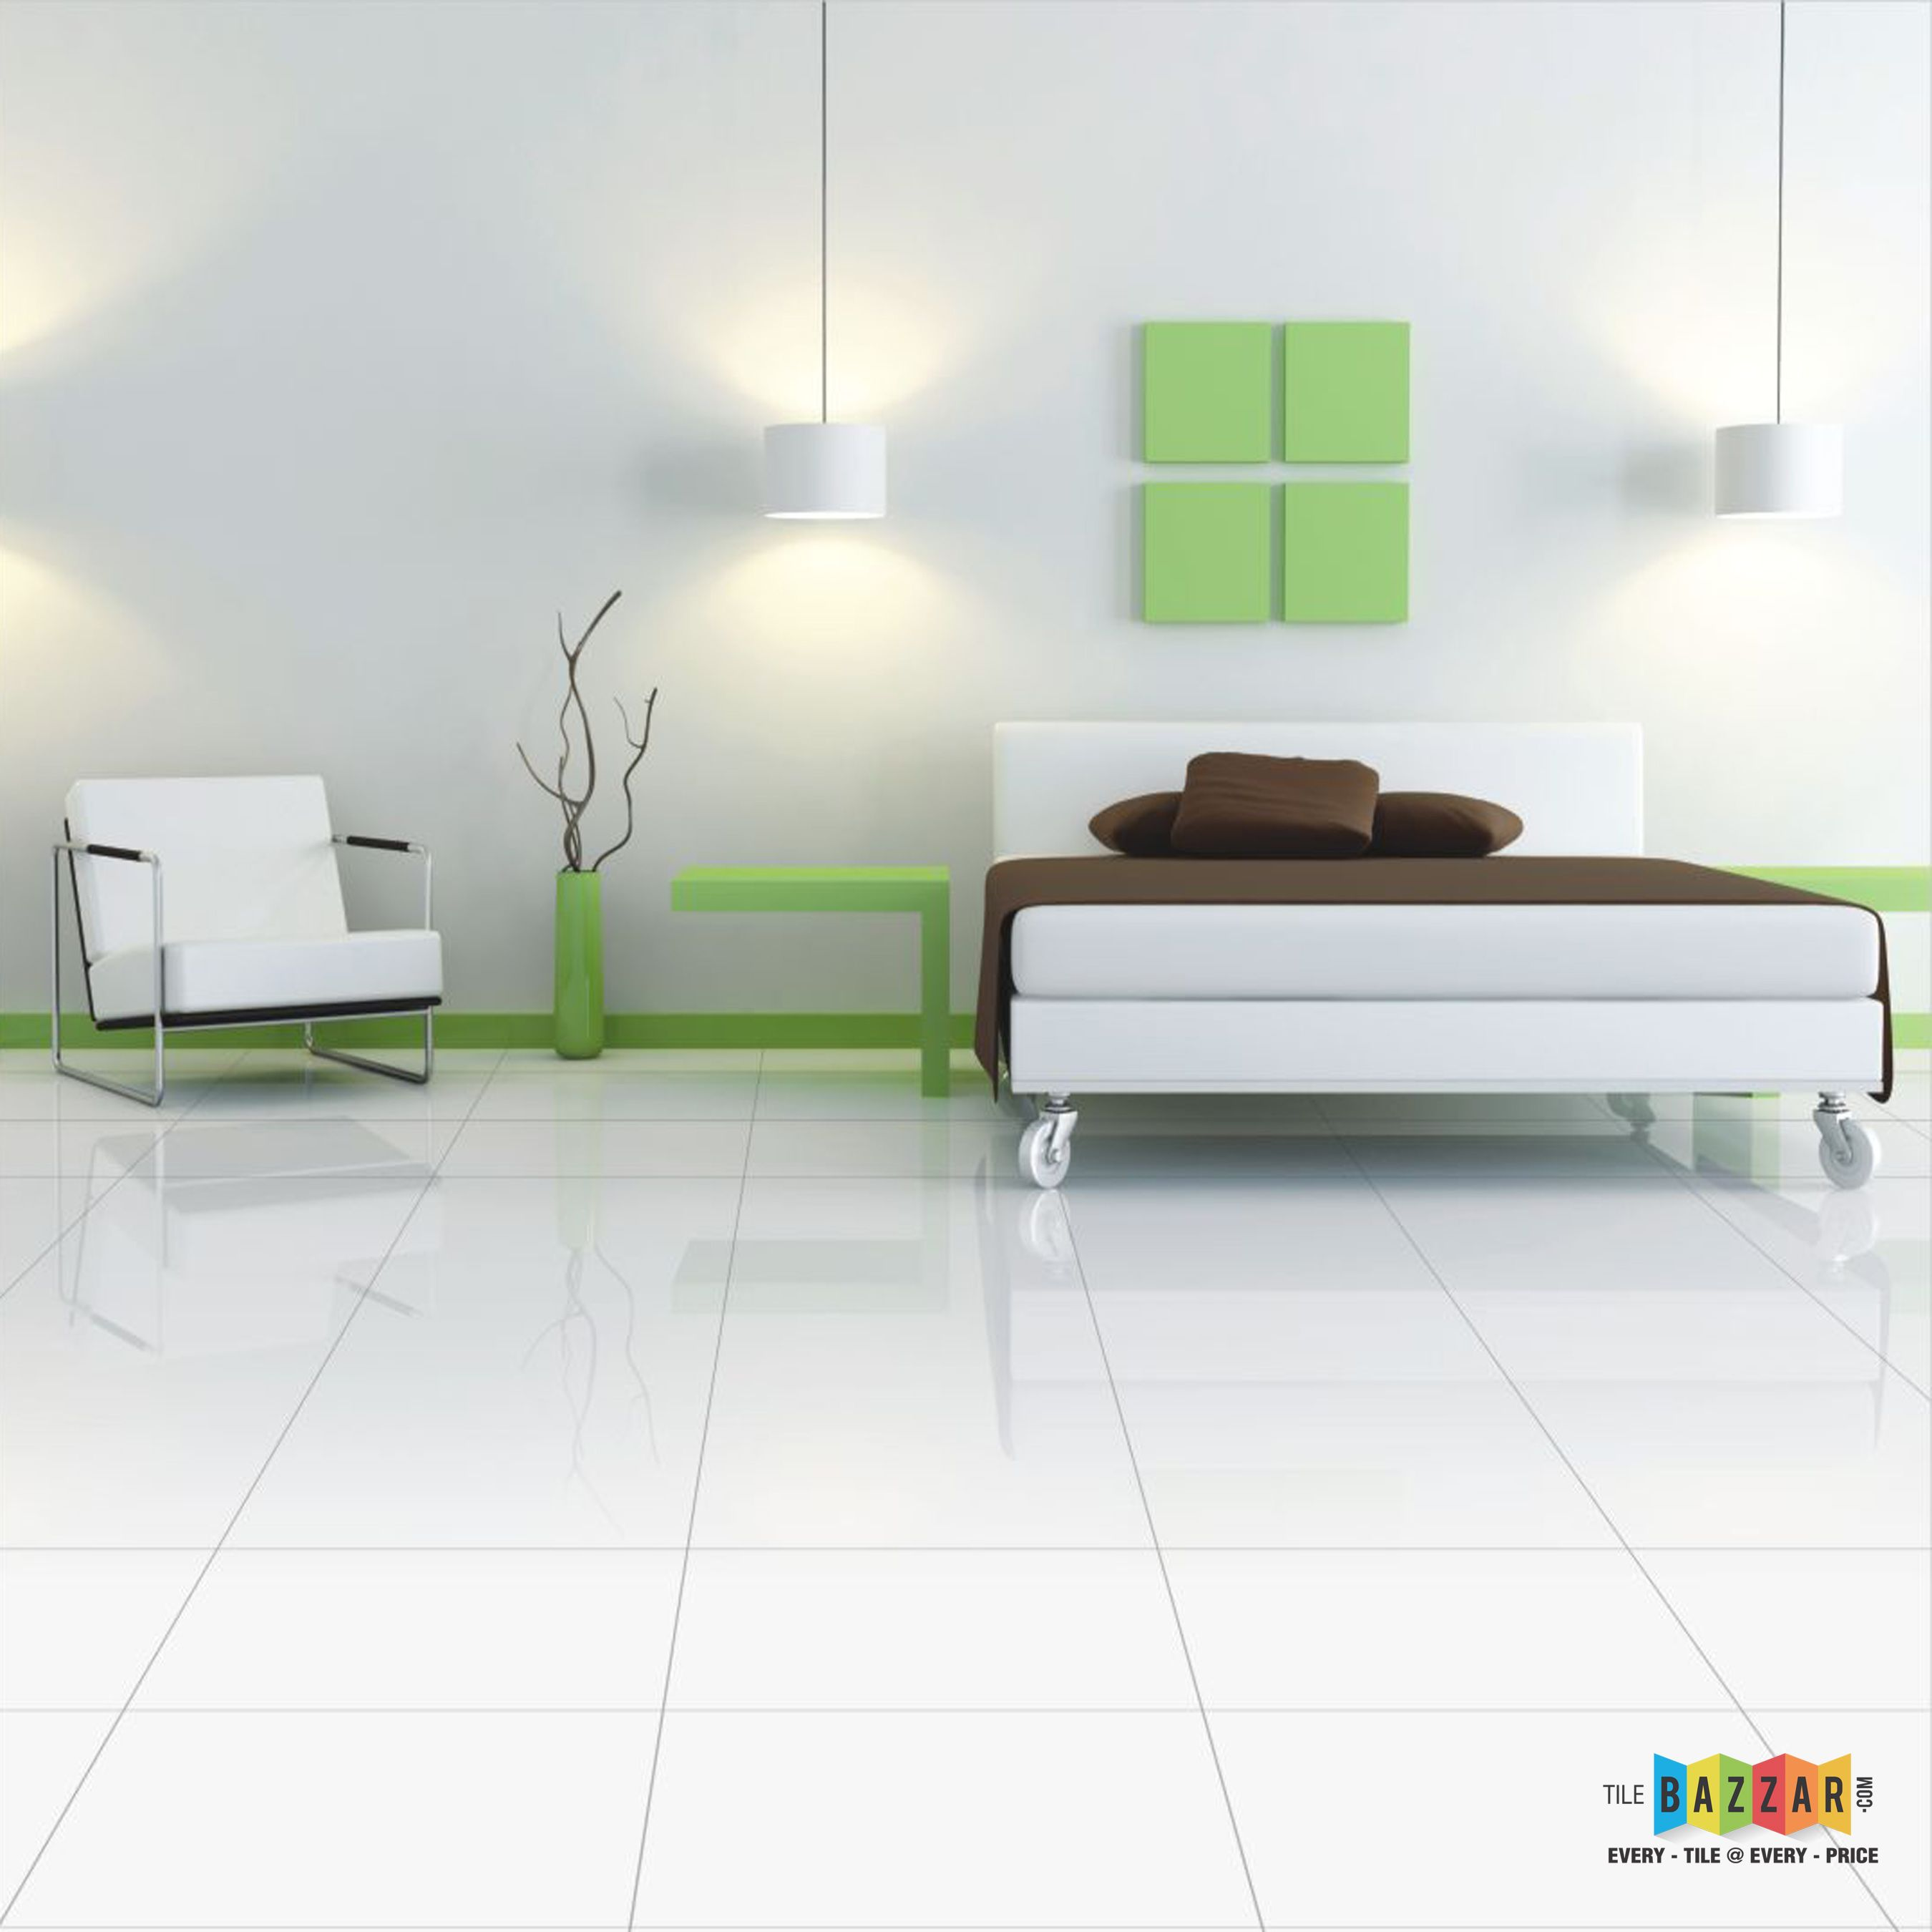 Buy Bathroom Tiles: Buy ‪#‎Wall, ‪#‎Floor Tiles, ‪#‎Bathroom, ‪#‎Kitchen